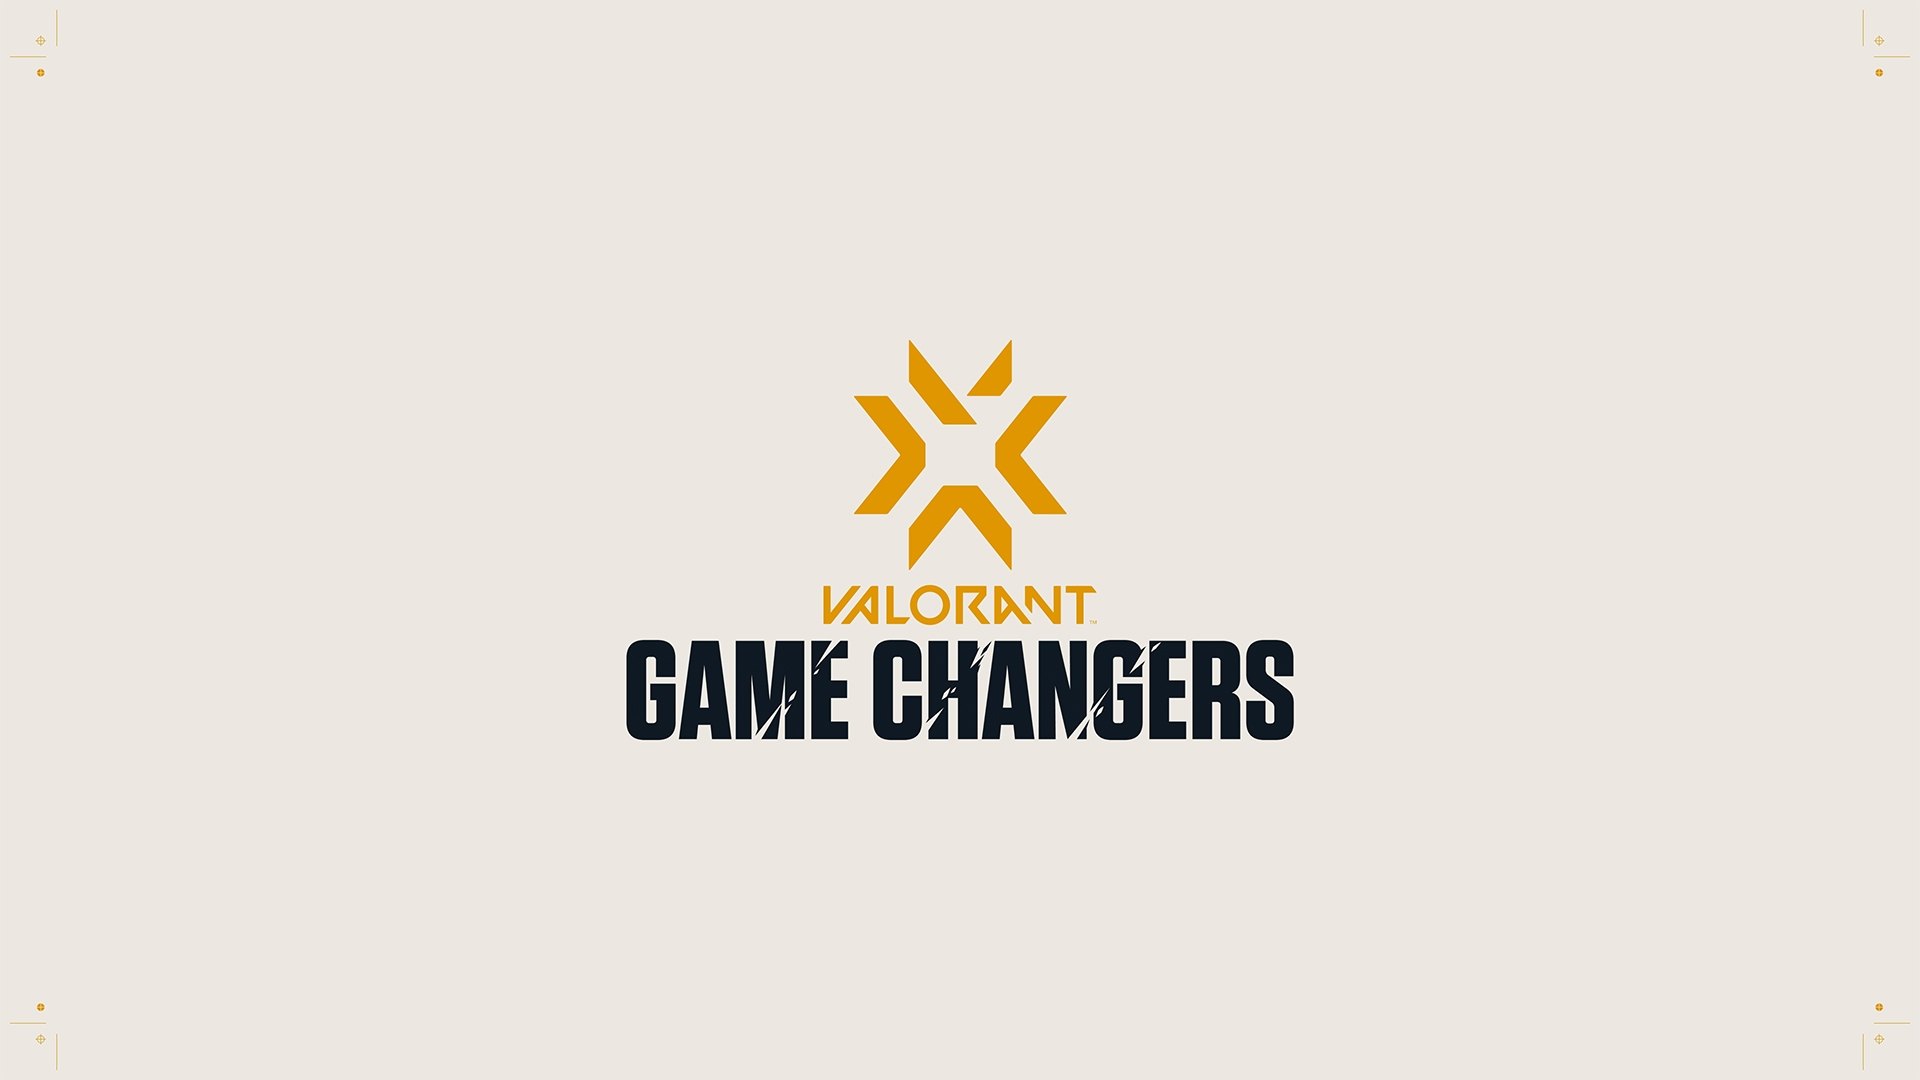 Valorant Game Changers looks to promote inclusivity within the game's competitive scene